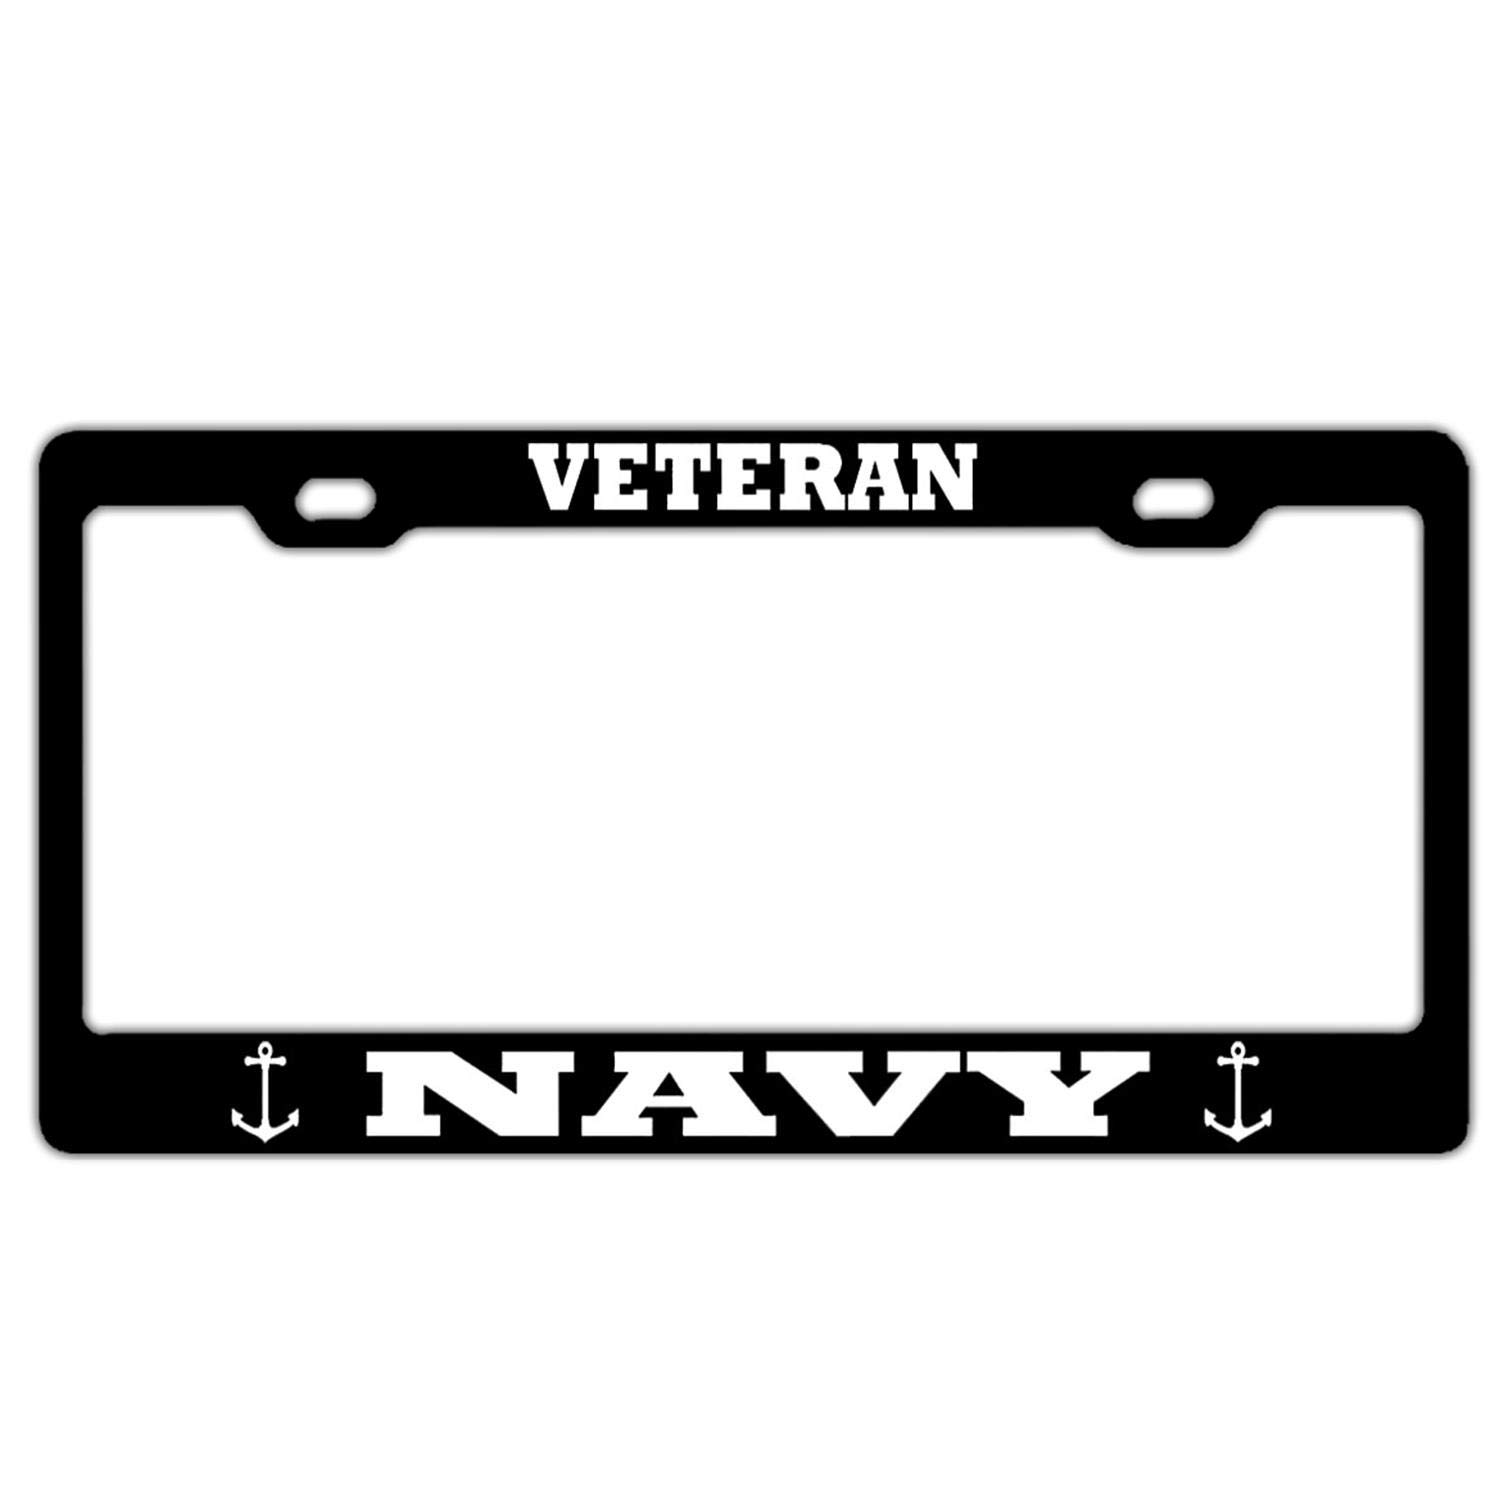 Personalized Black License Plate Frame 2 Holes Car Aluminum Metal License Plate Tag Cover